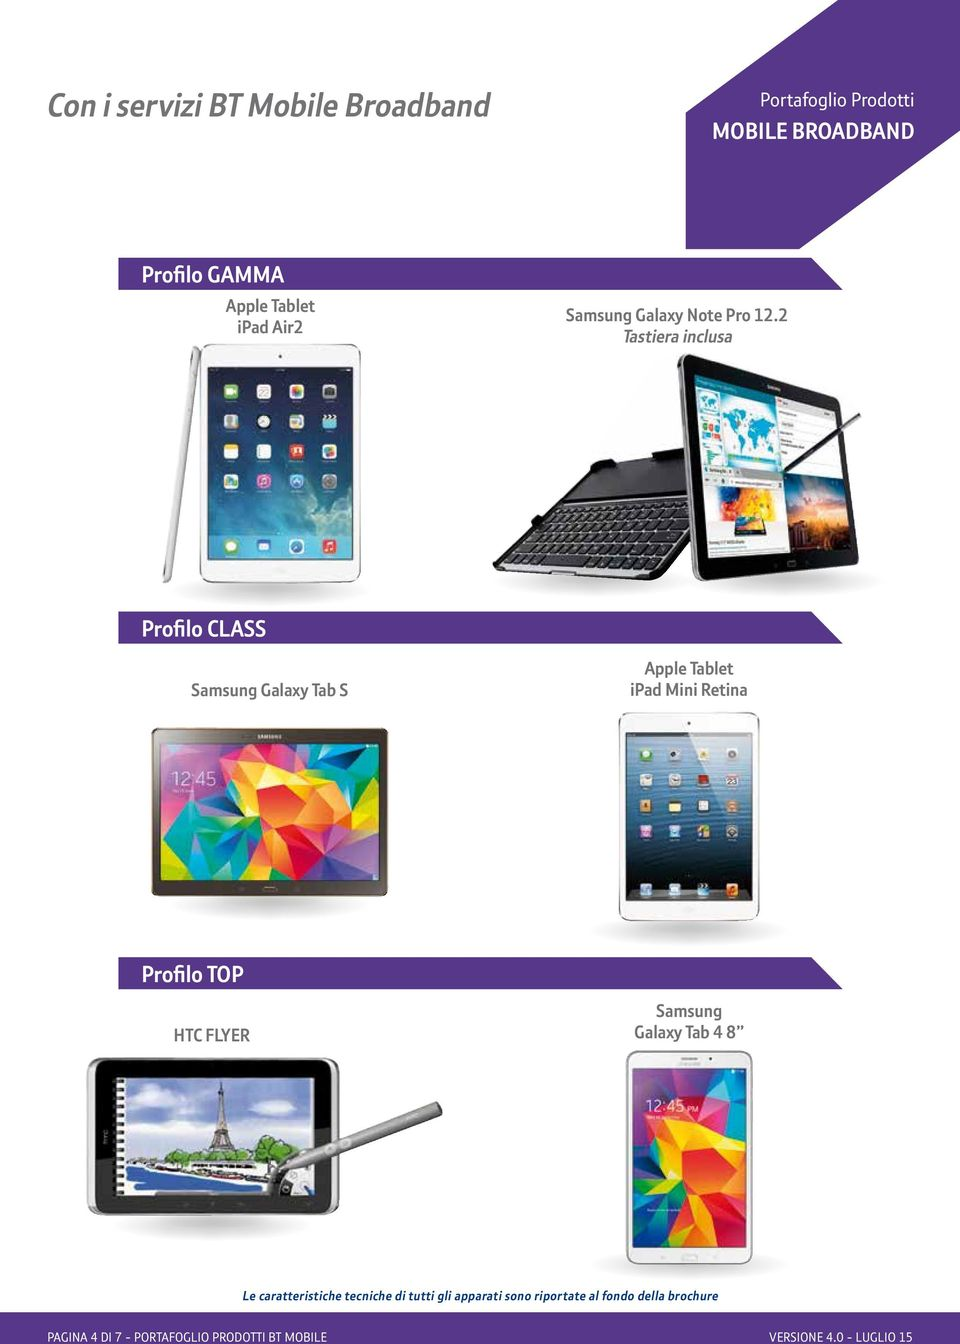 2 Tastiera inclusa Profilo CLASS Galaxy Tab S Apple Tablet ipad Mini